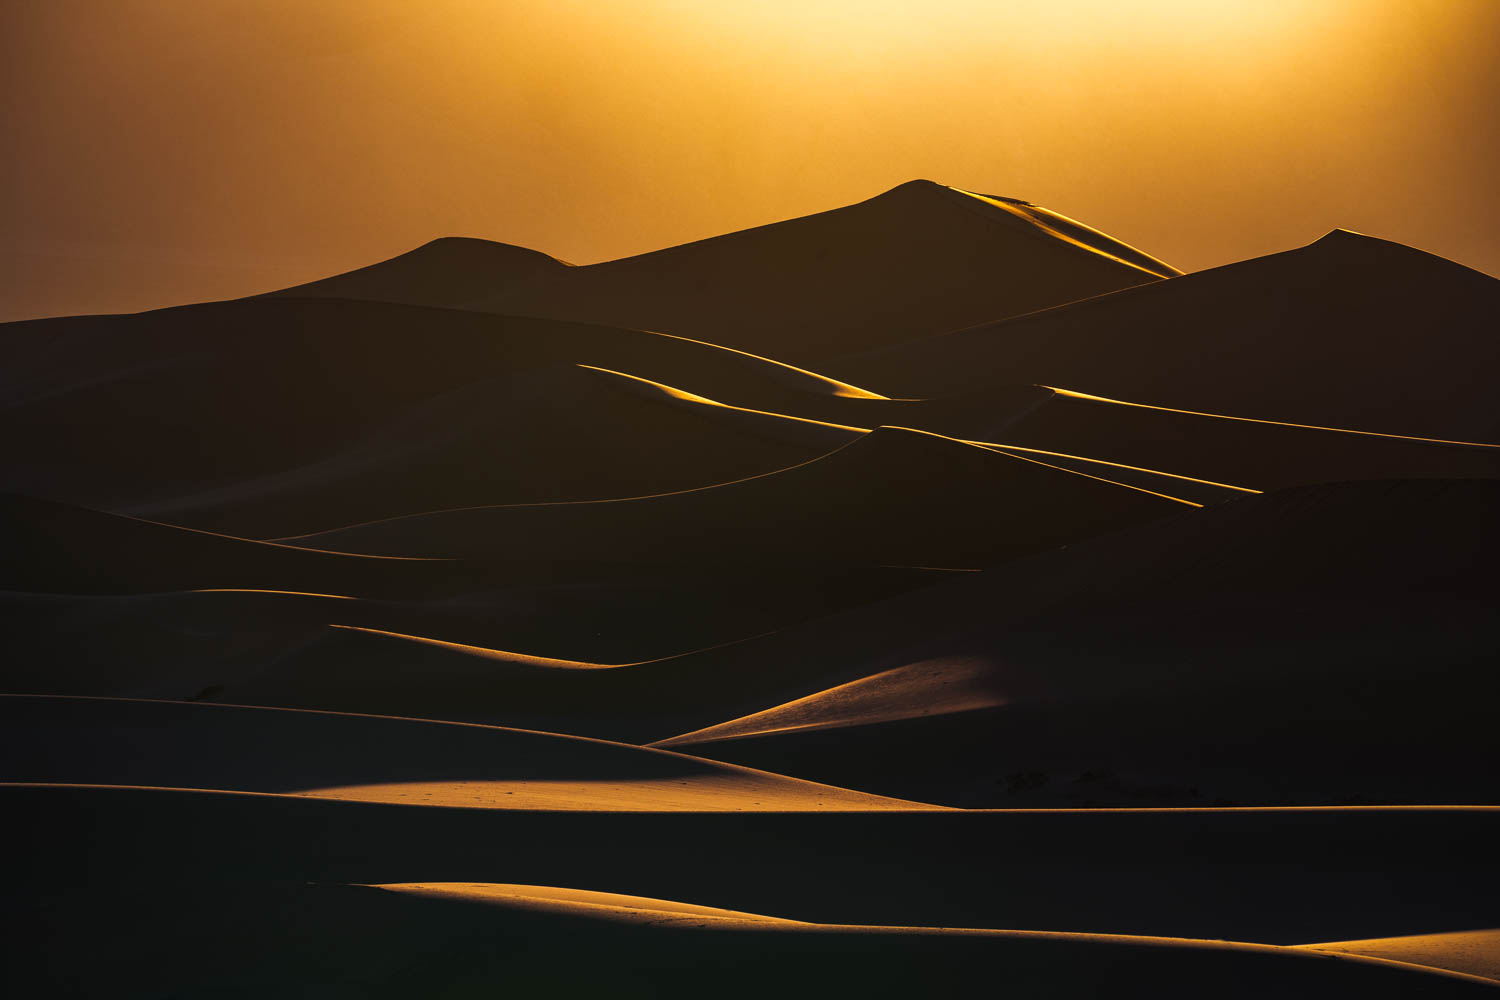 Layers of sand dunes with golden lit edges and dark shadows